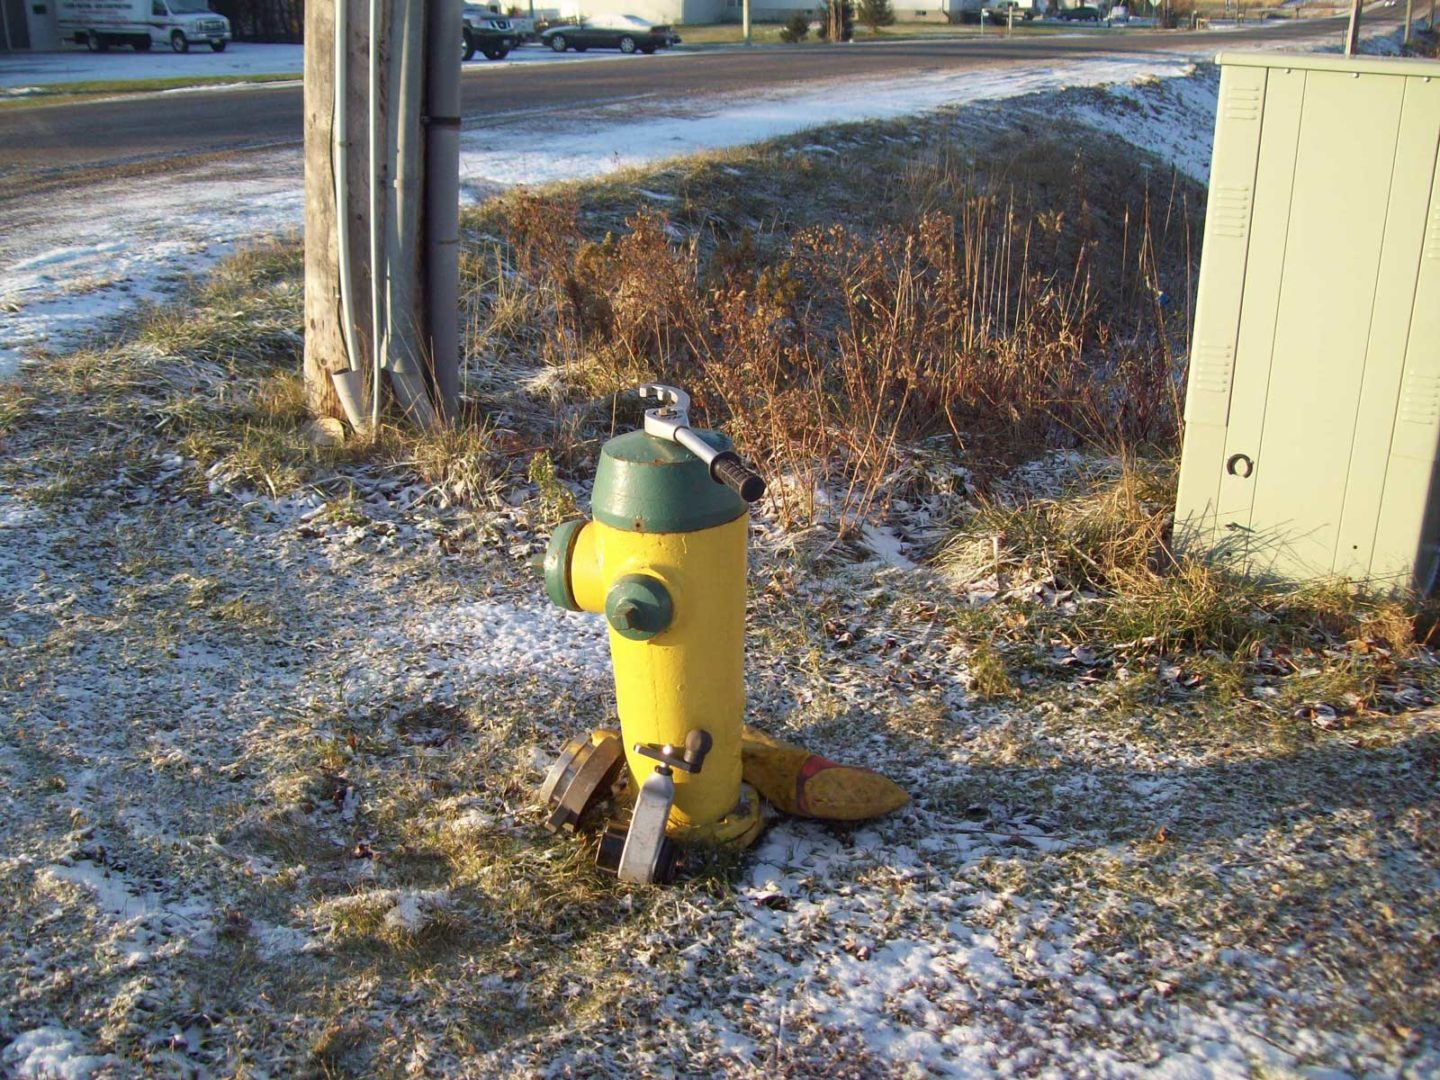 Tools staged near hydrant